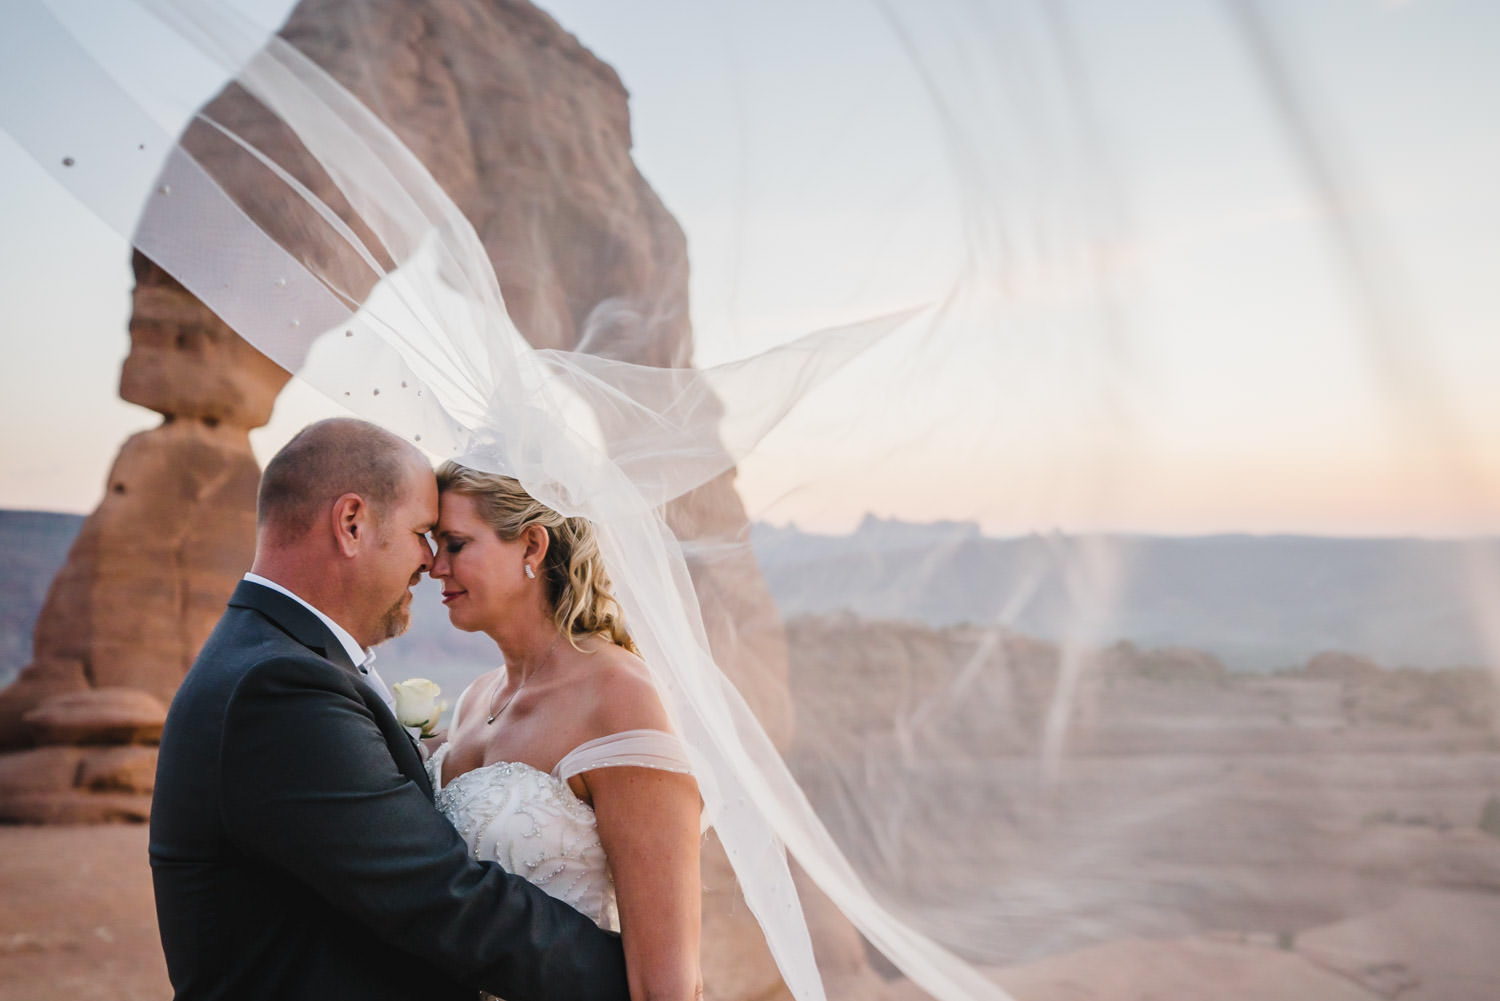 Delicate Arch elopement intimate moment with veil in the wind photo